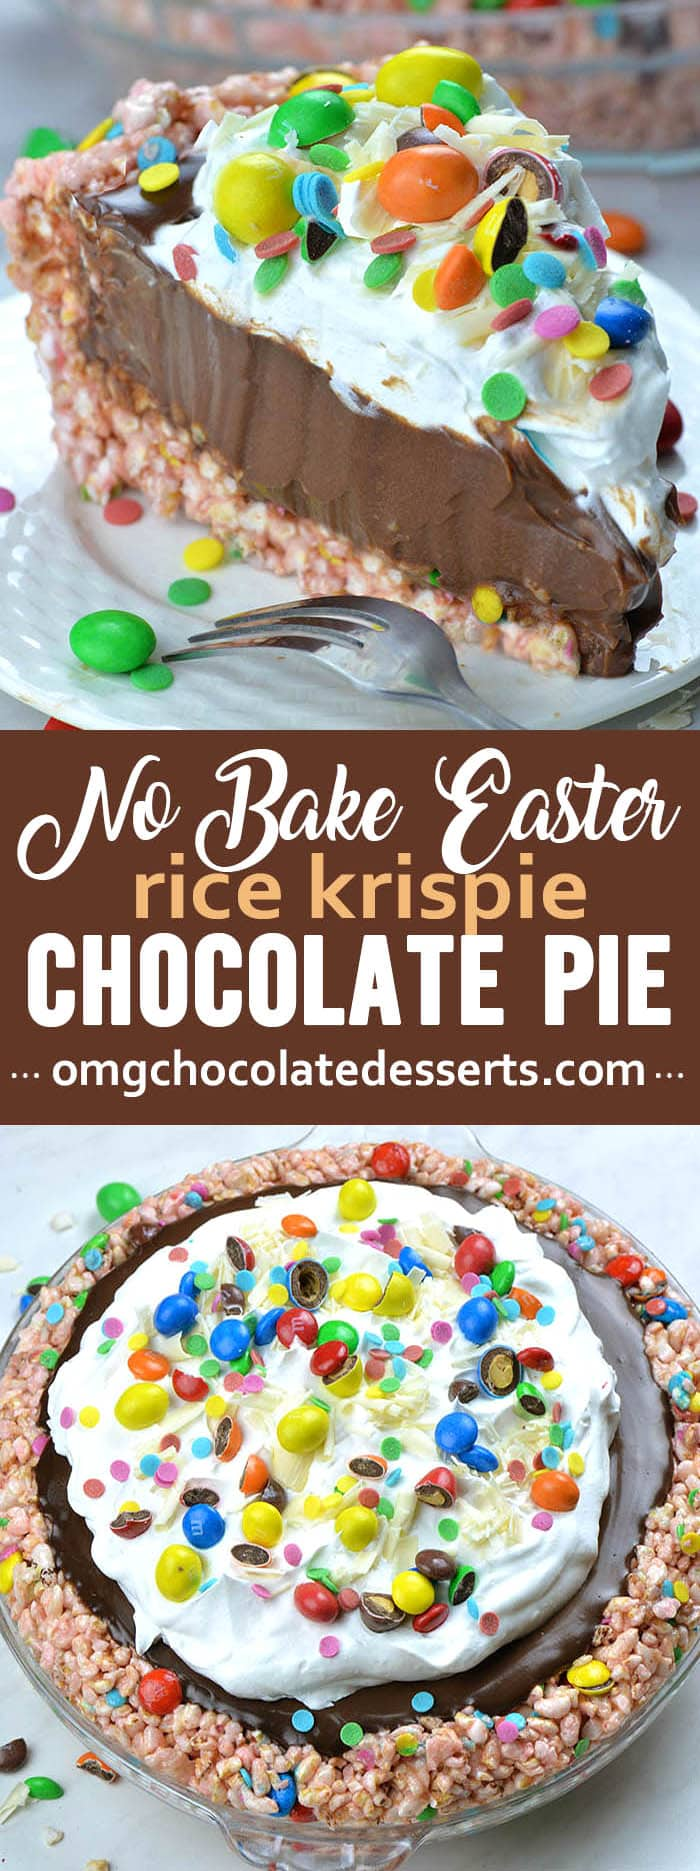 Looking for quick and easy Easter dessert recipe? This No Bake Easter Chocolate Pie with Rice Krispie crust and chocolate pie filling, topped with M&M candies and white chocolate shavings is perfect and easy dessert recipe.